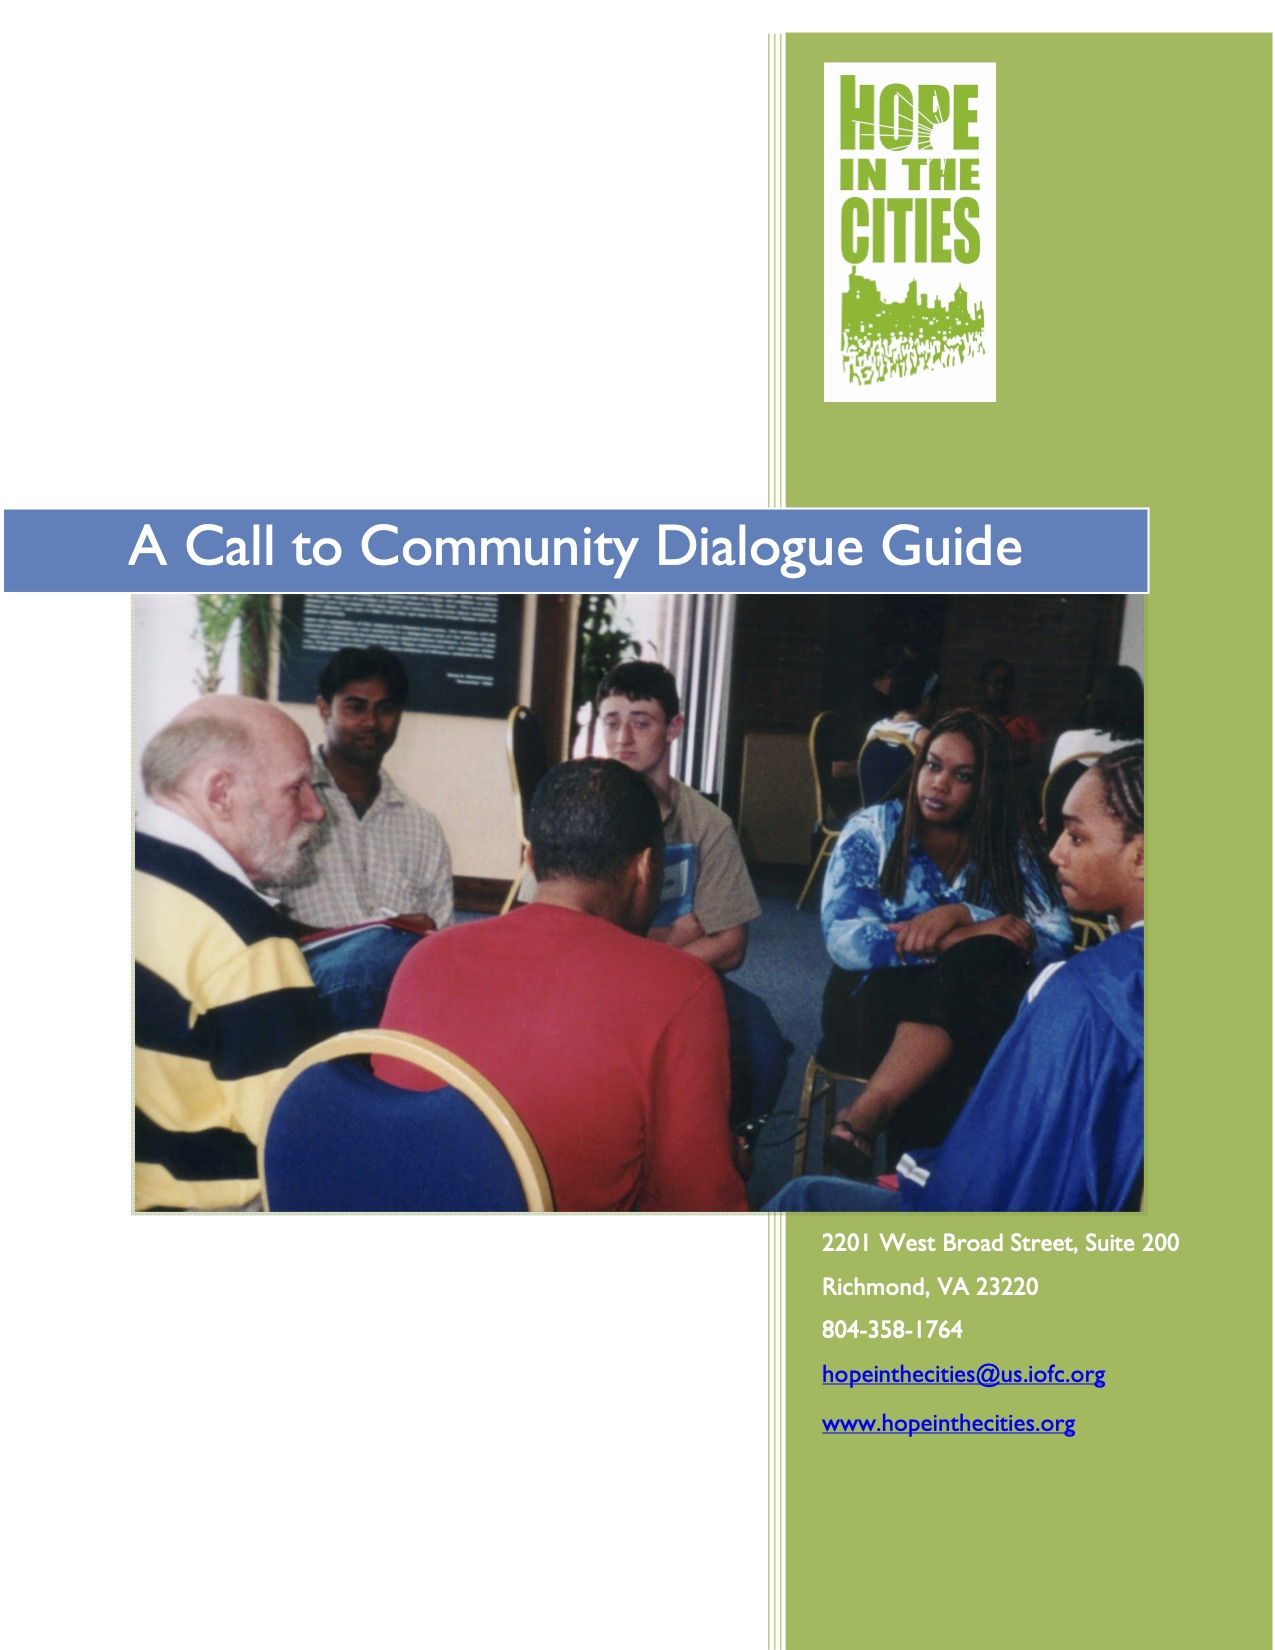 A Call to Community - Dialogue Guide (Rob Corcoran)